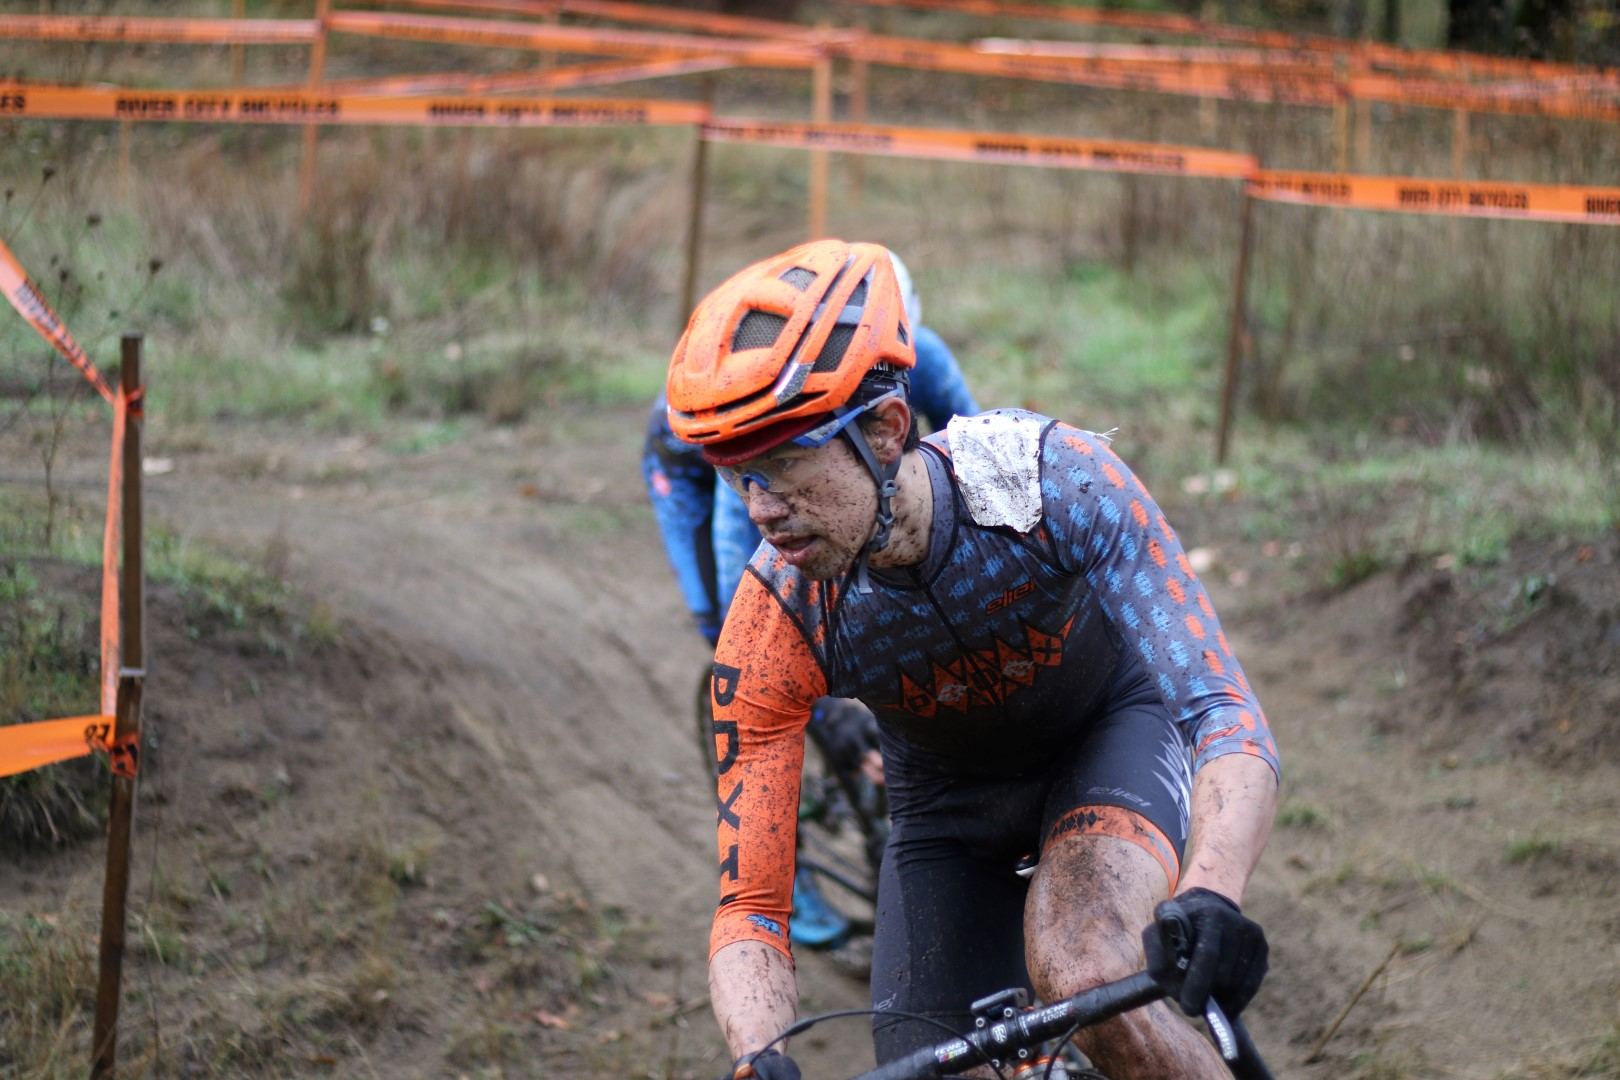 PDXTI-2018-CX-Crusade-04-Cascade-Locks (75).JPG